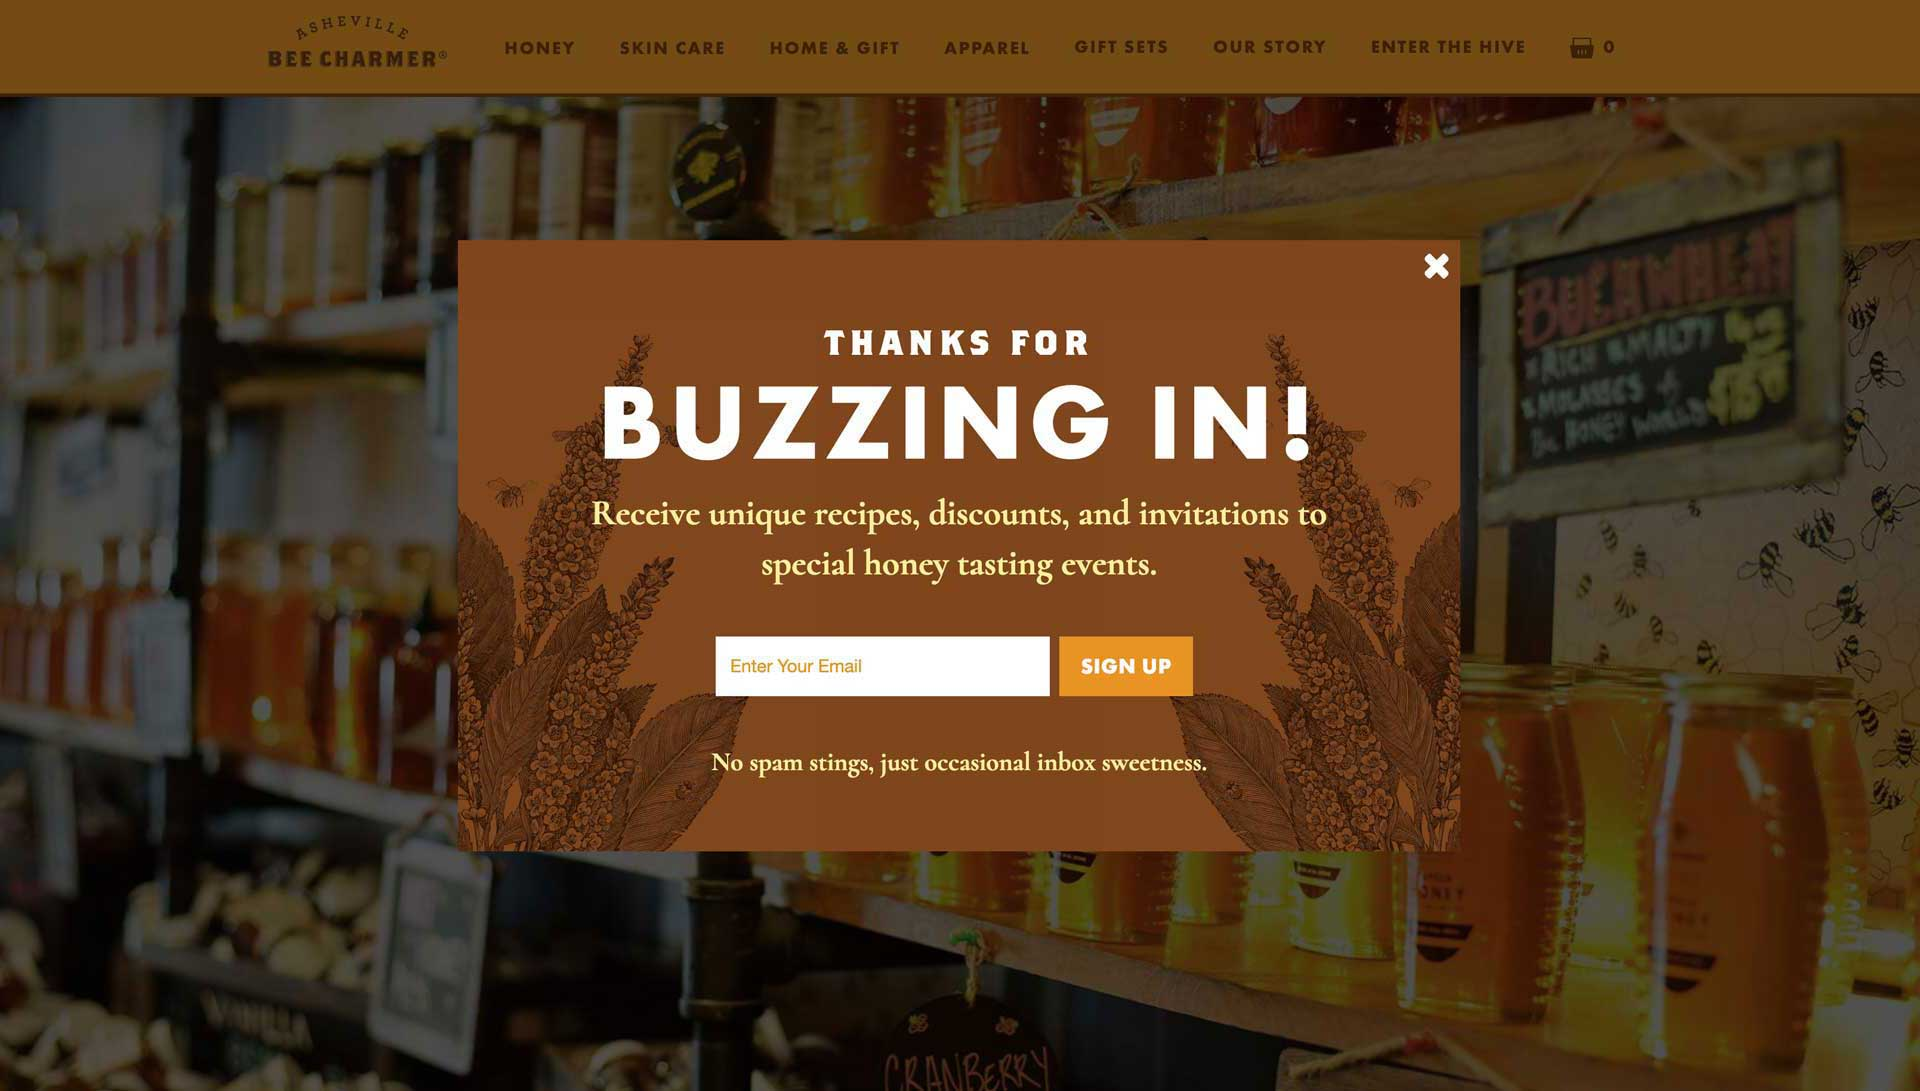 Asheville Bee Charmer Newsletter Sign Up Popup